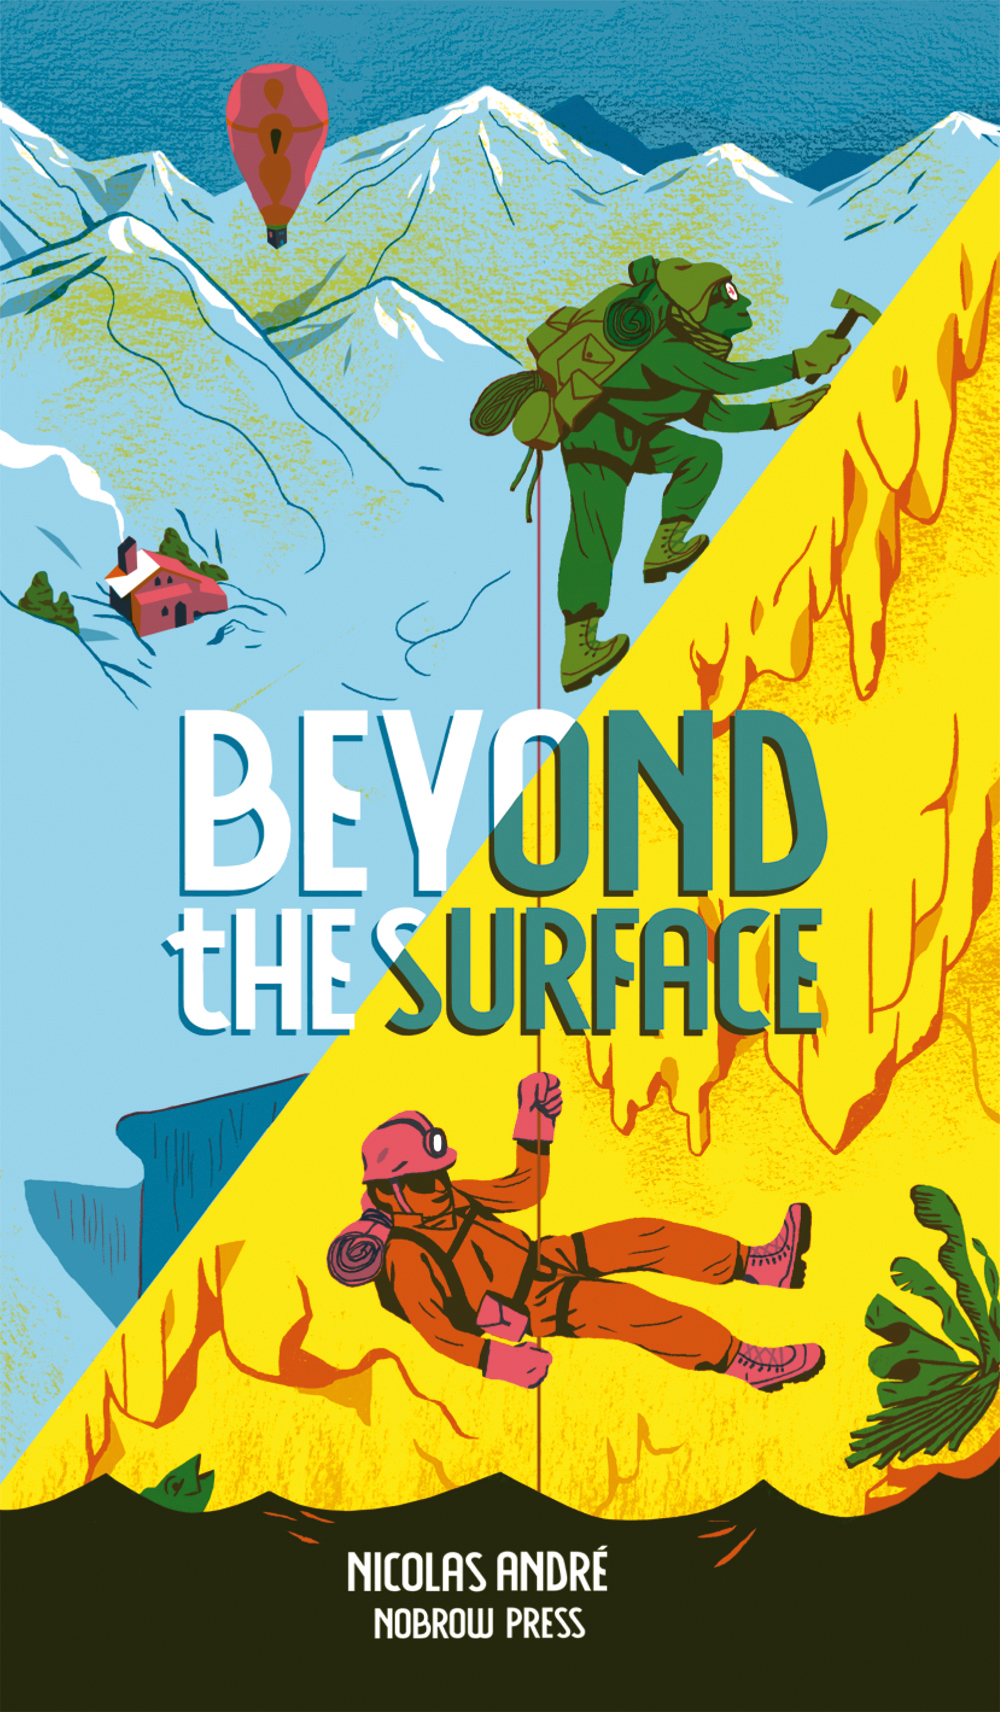 Beyond-the-surface-cover-nobrow-2014